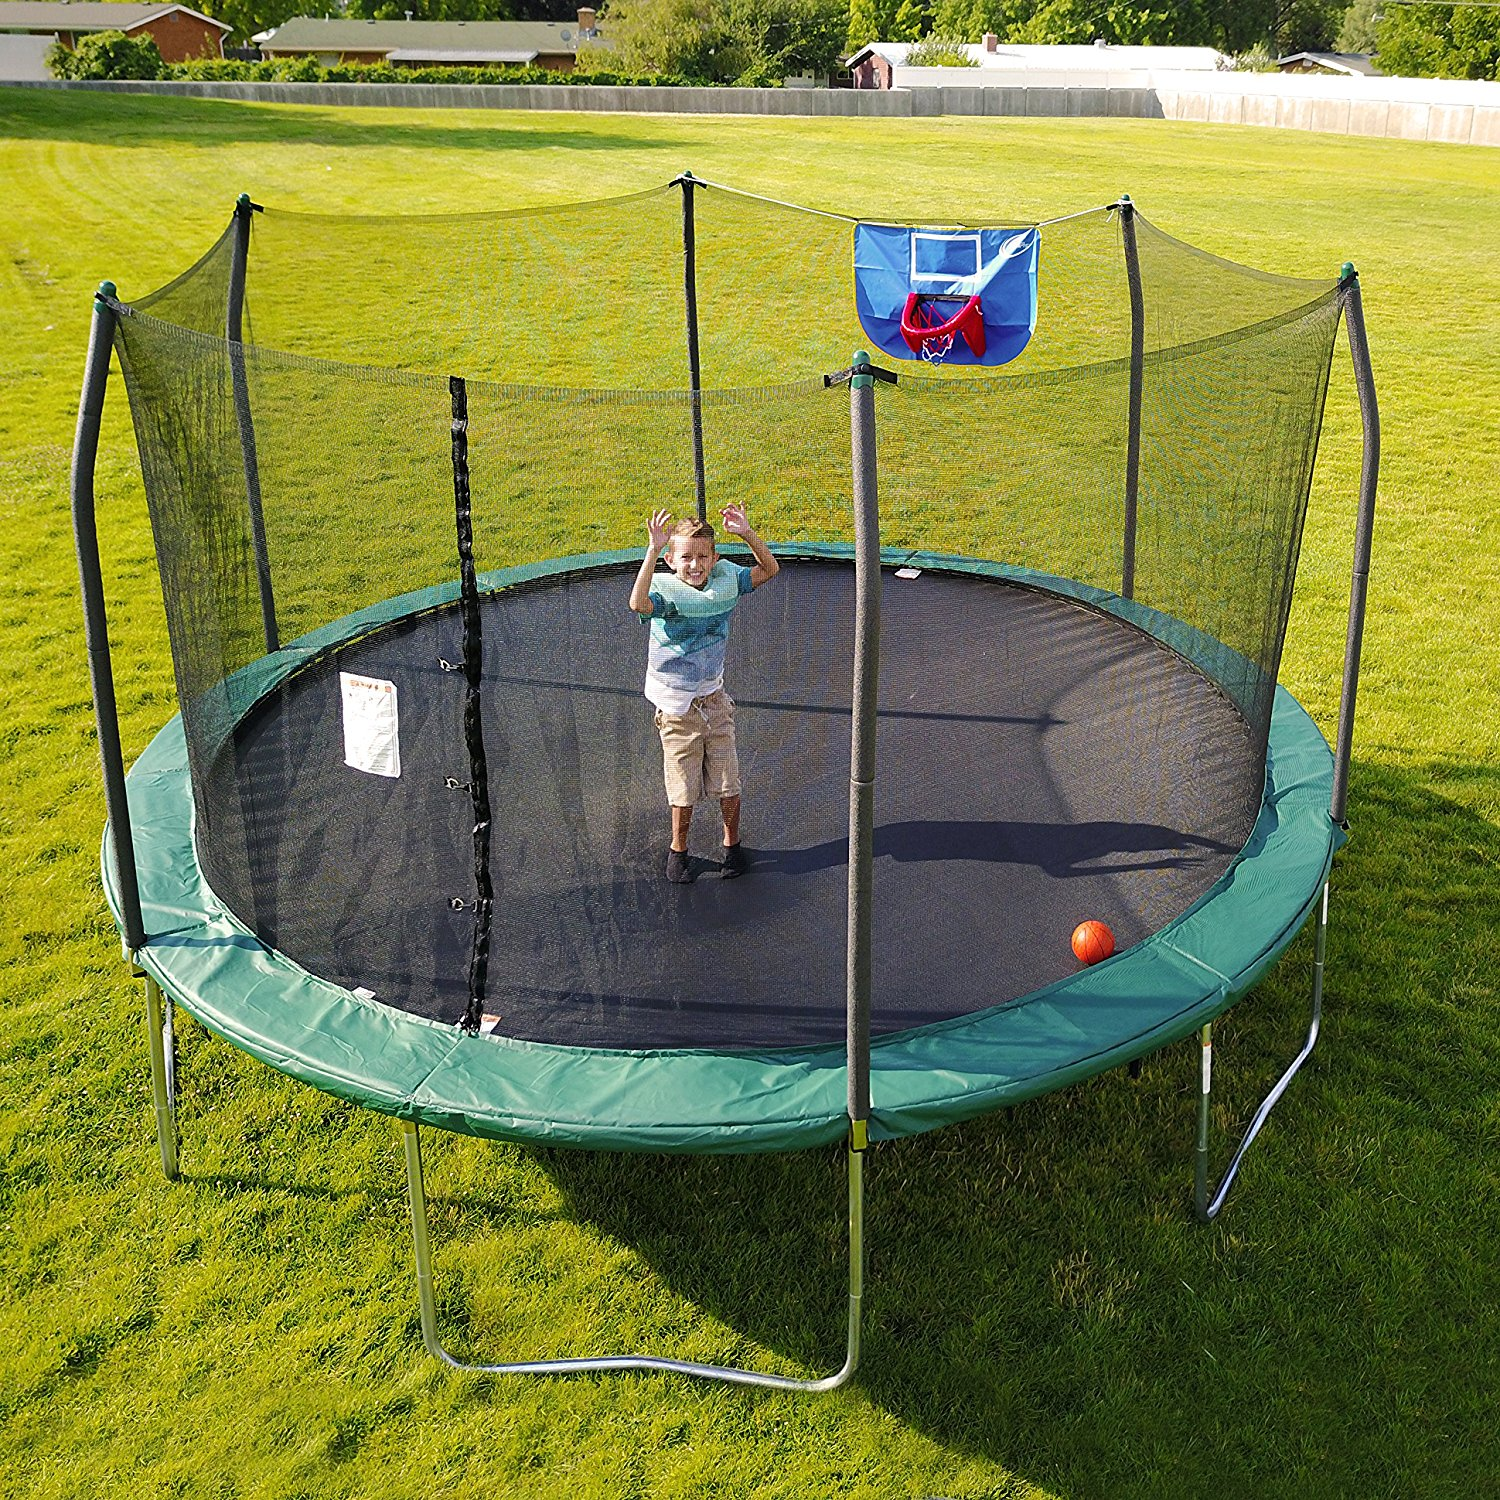 skywalker 15 trampoline